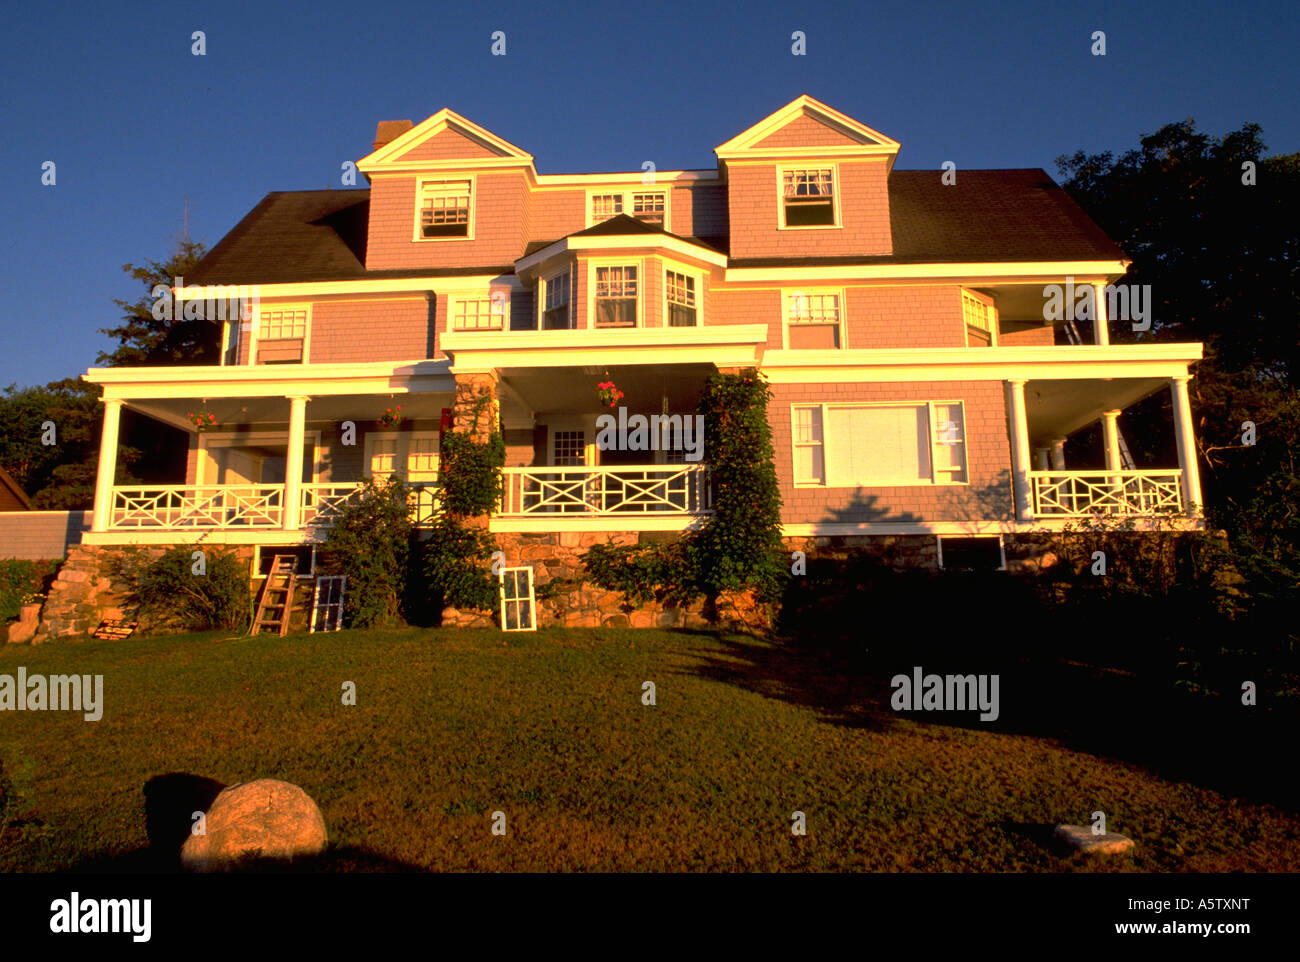 Painet Hl1916 Mansion Hill Sorrounding By Nature Grass Trees Home Big House Elegant Rich People Kennebunkport Maine